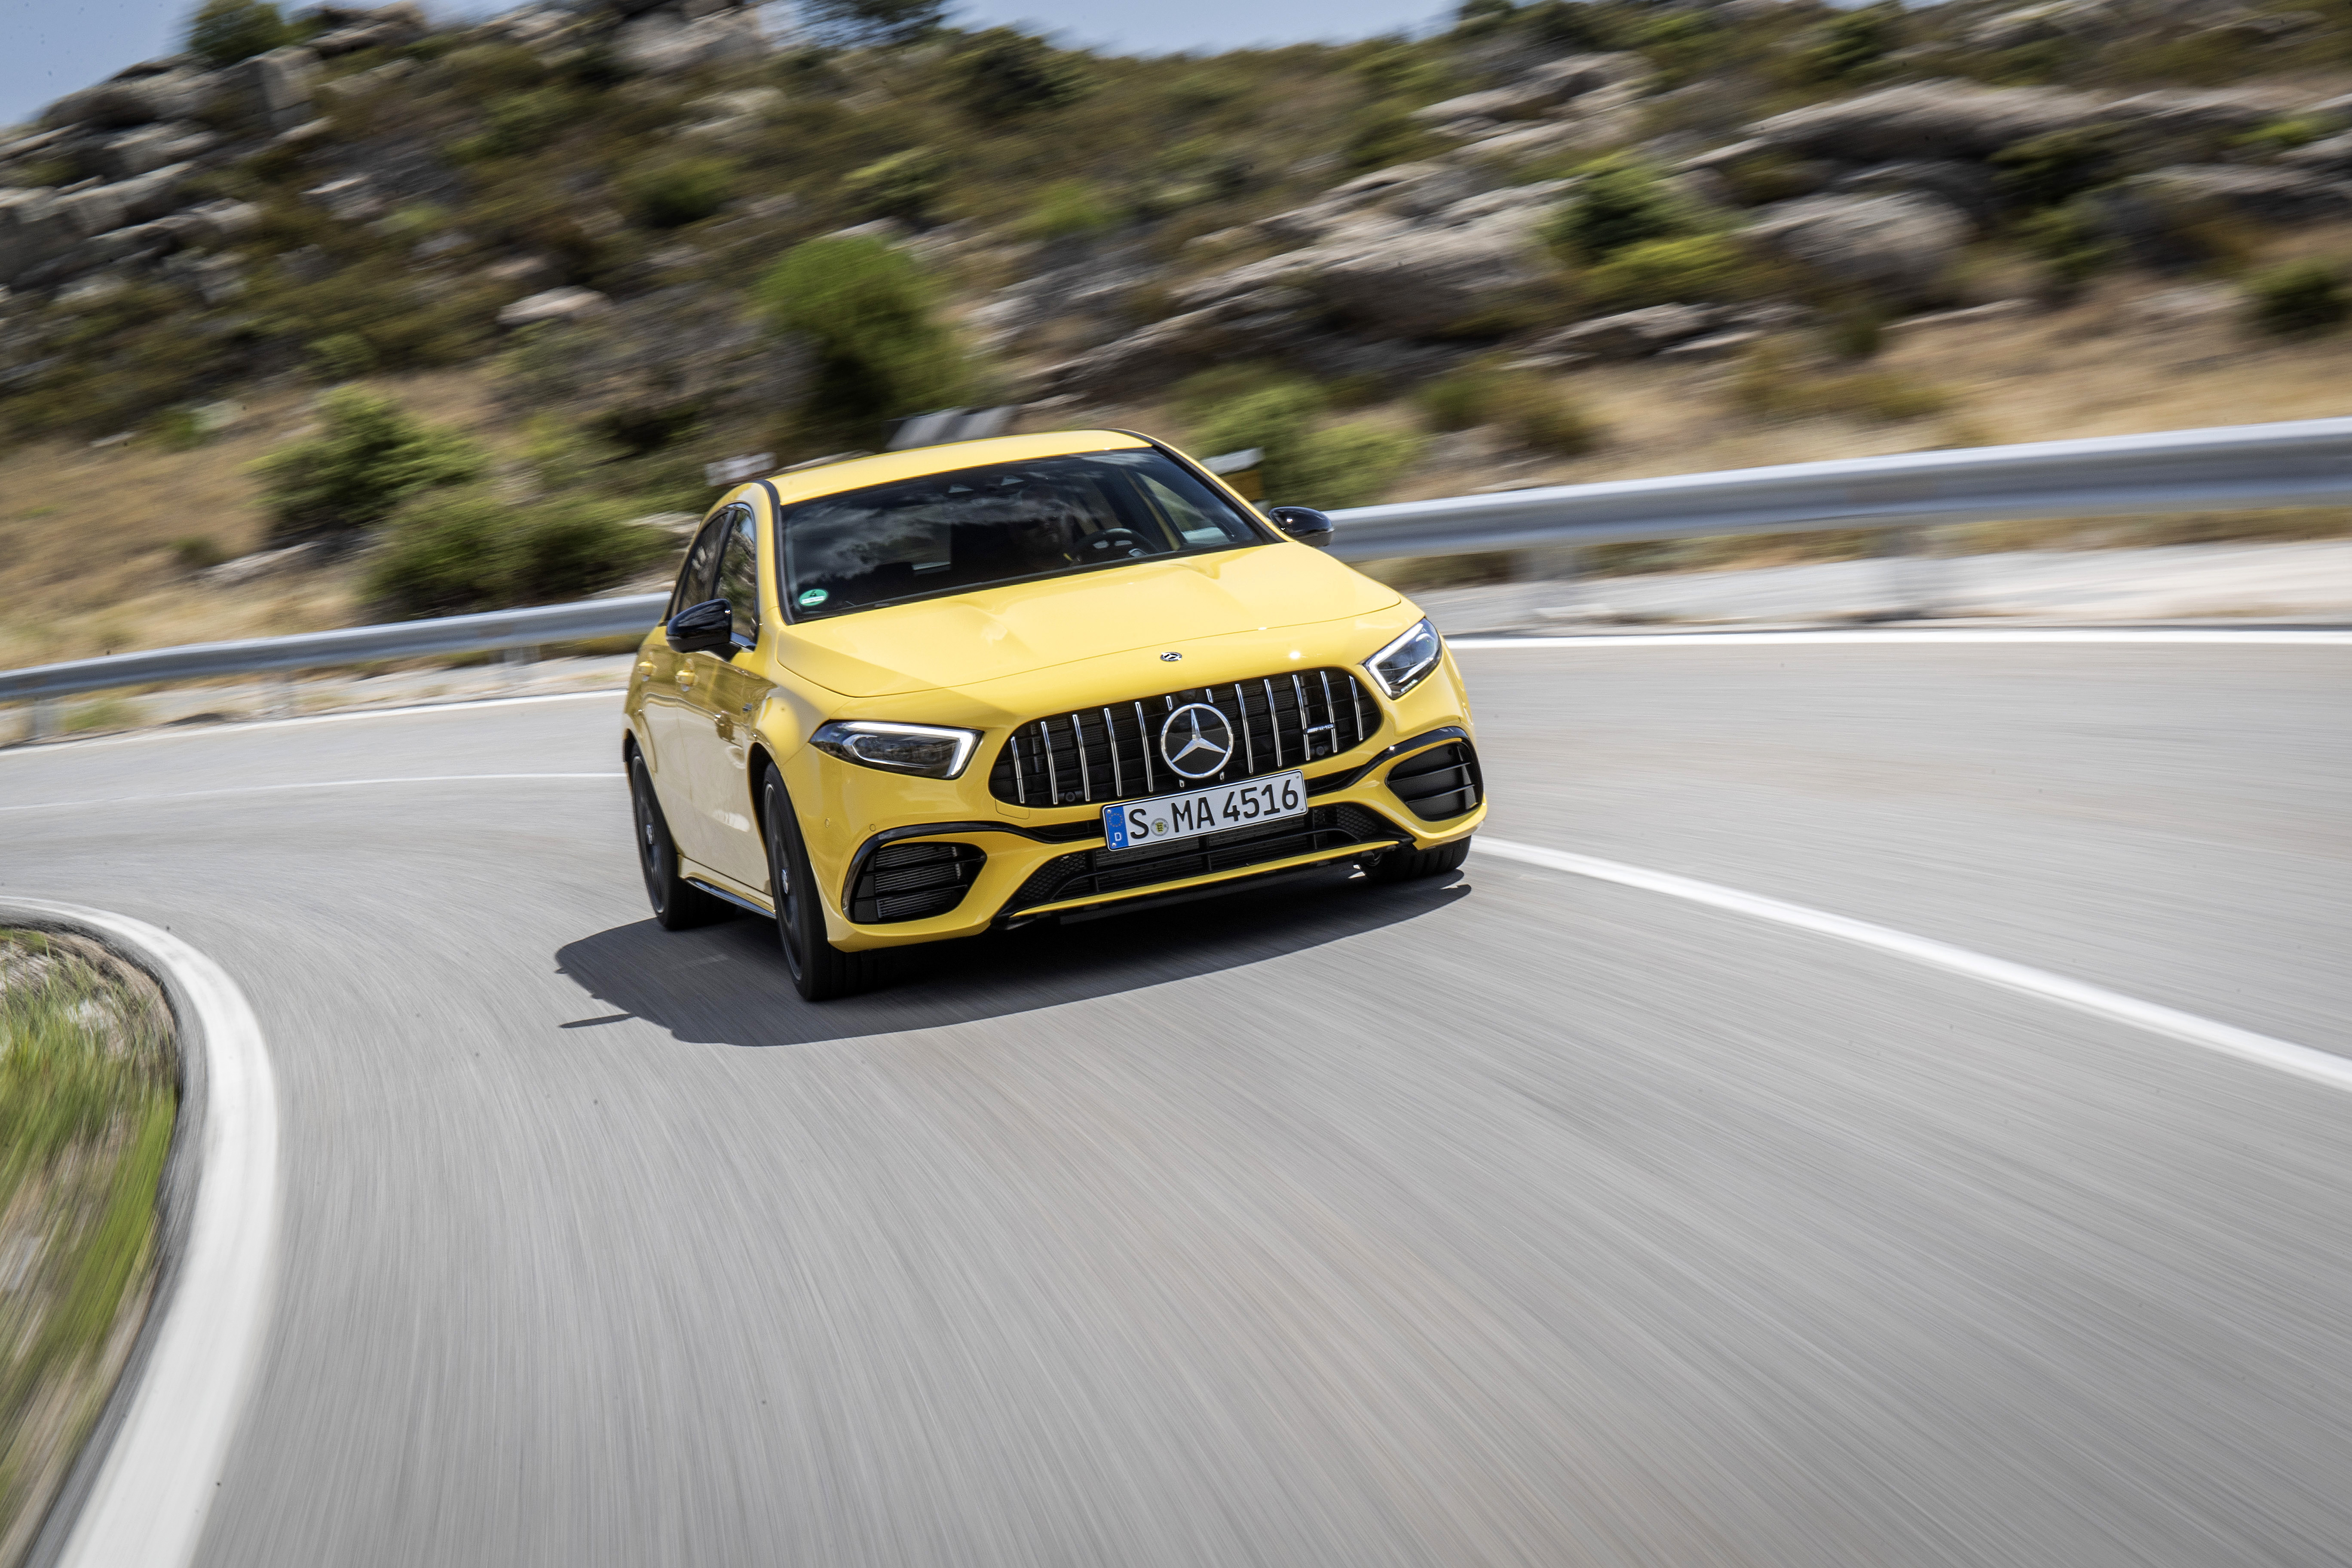 In the corners is where the A 45 comes alive